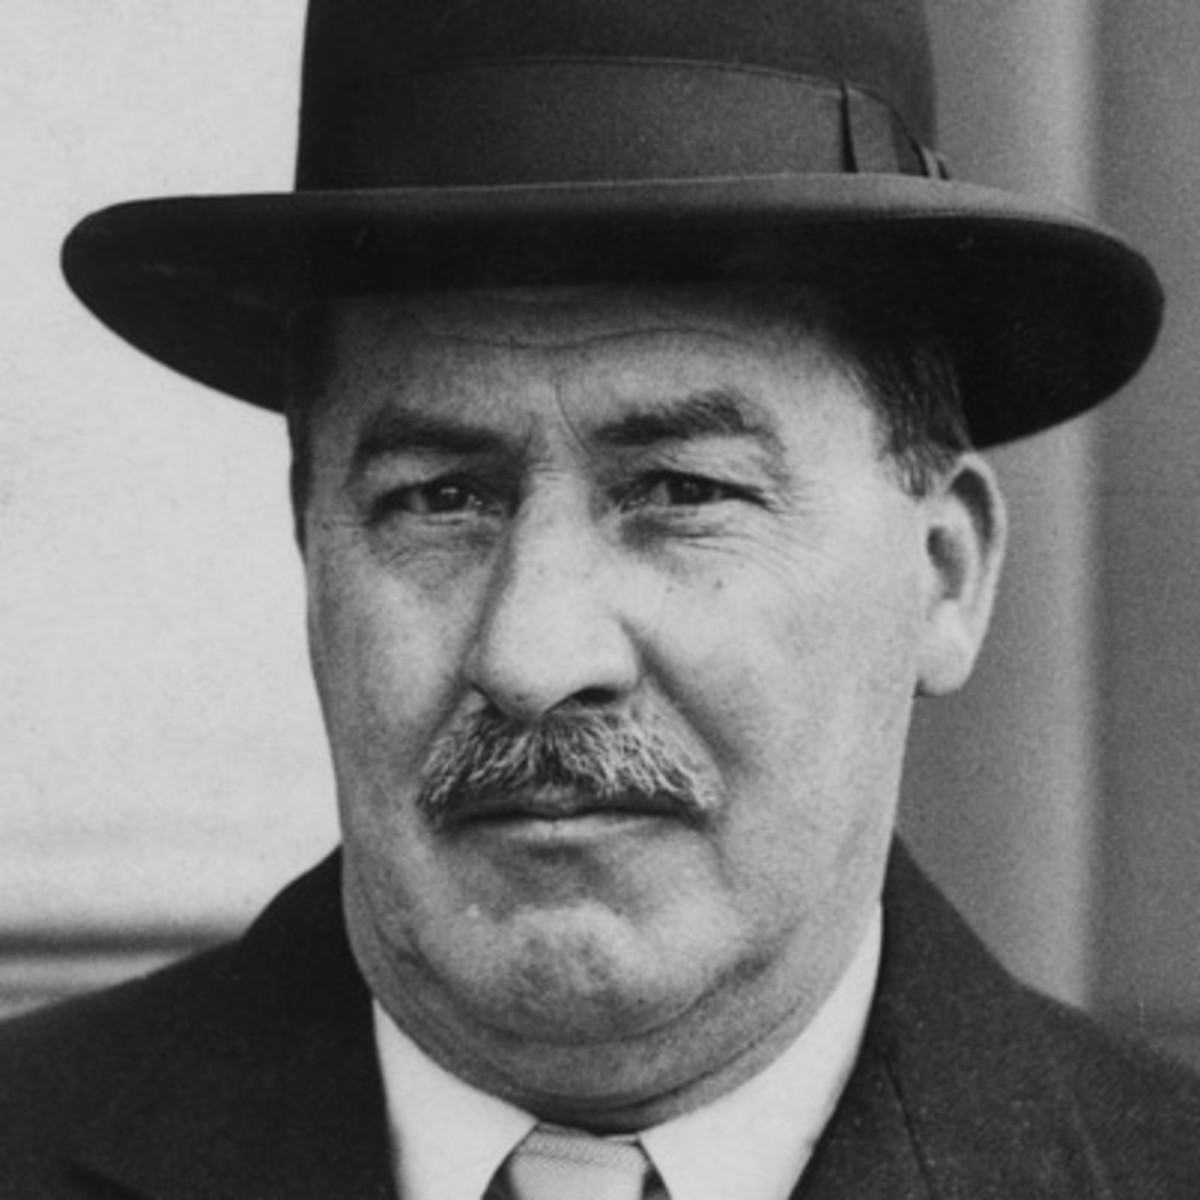 Howard Carter - Archaeologist, Academic - Biography.com